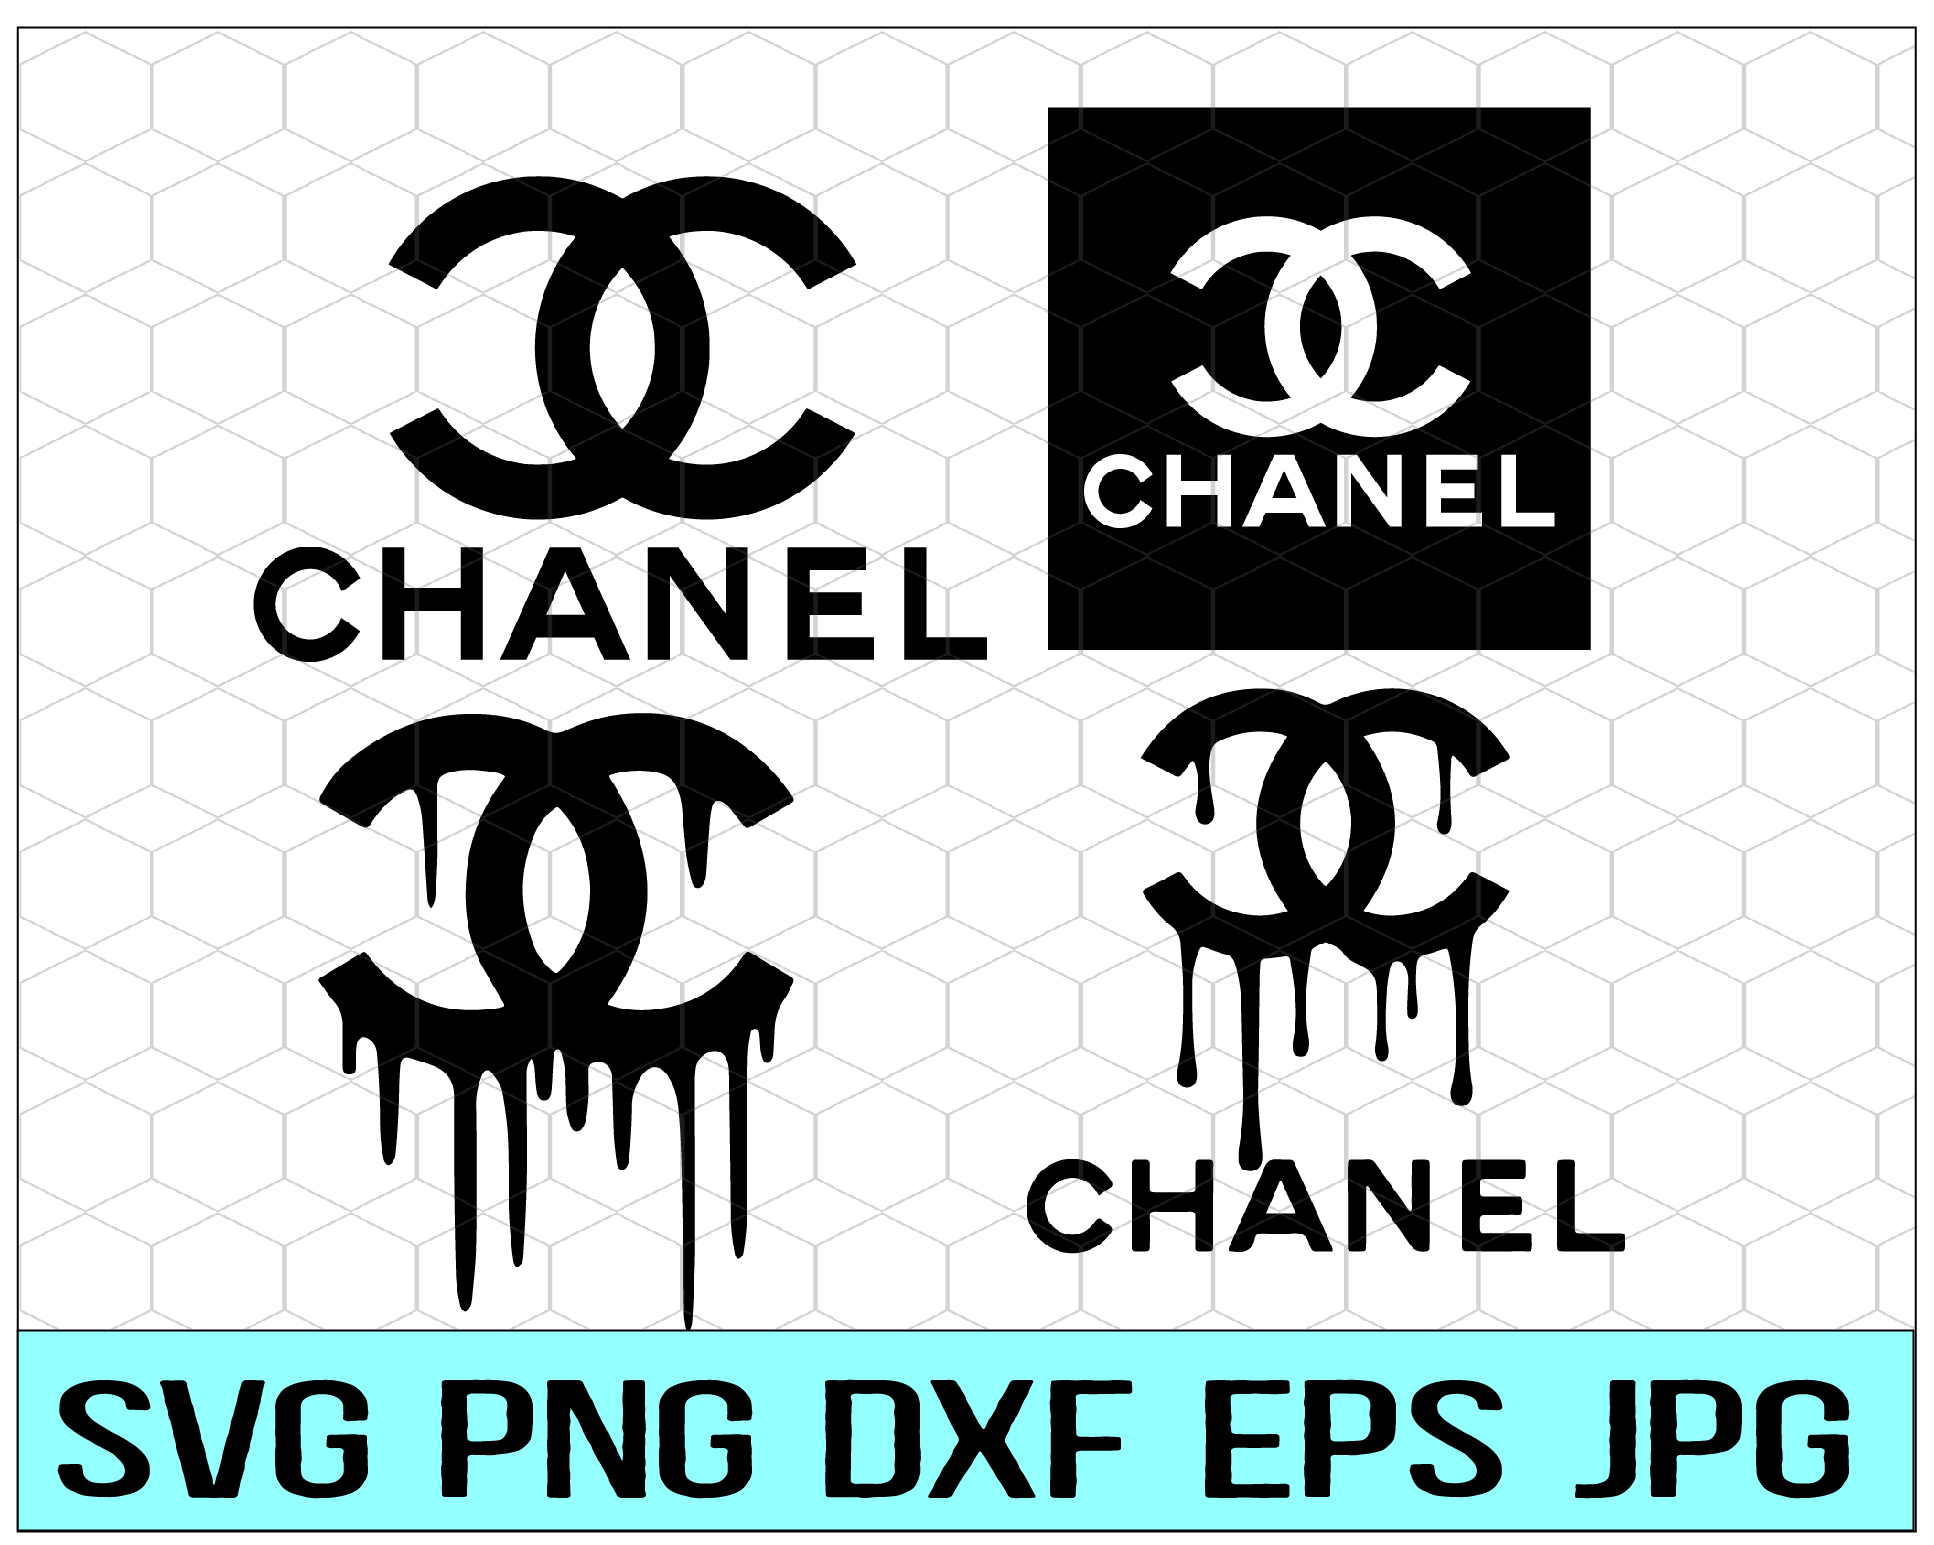 Chanel Svg Chanel Cut Files Logo Chanel By Svgbundleshop On Zibbet